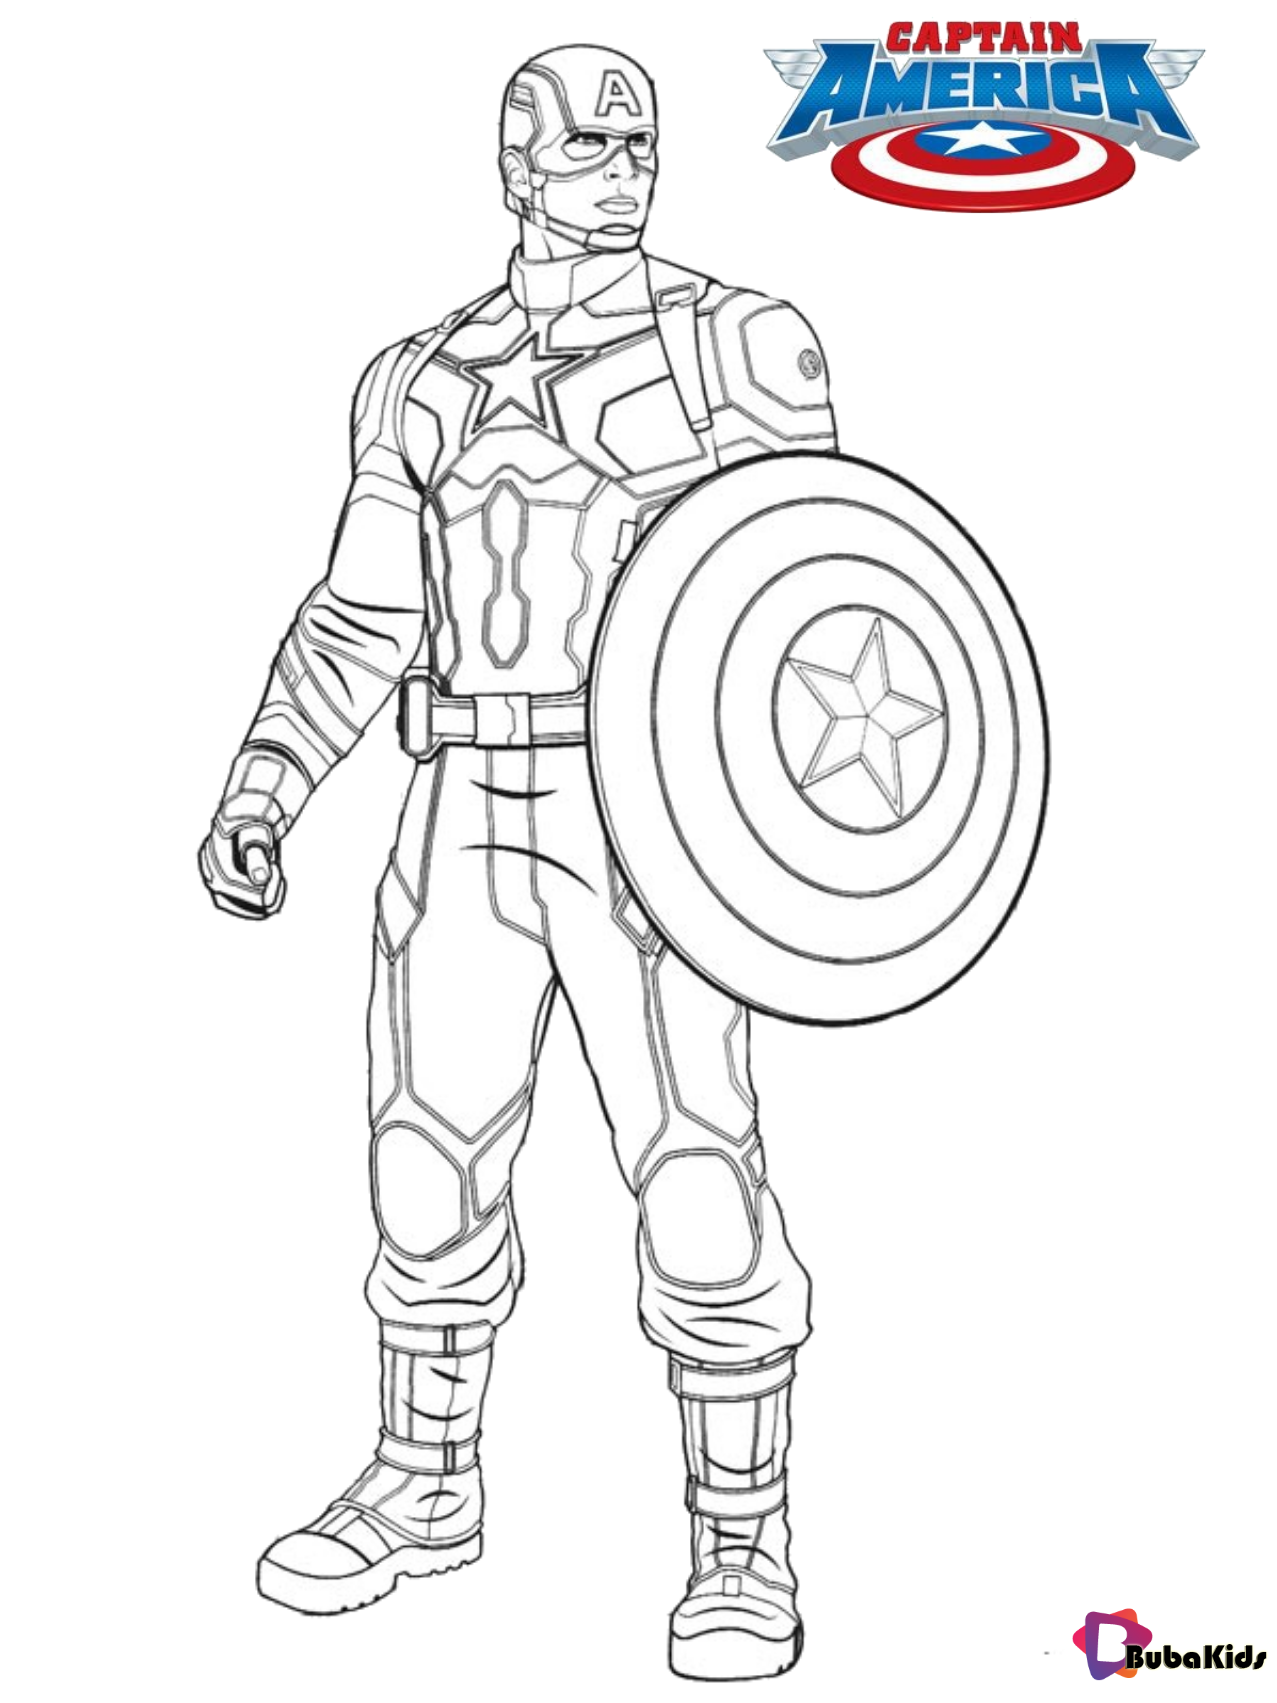 Captain america coloring page for kids in 2020 (With ...